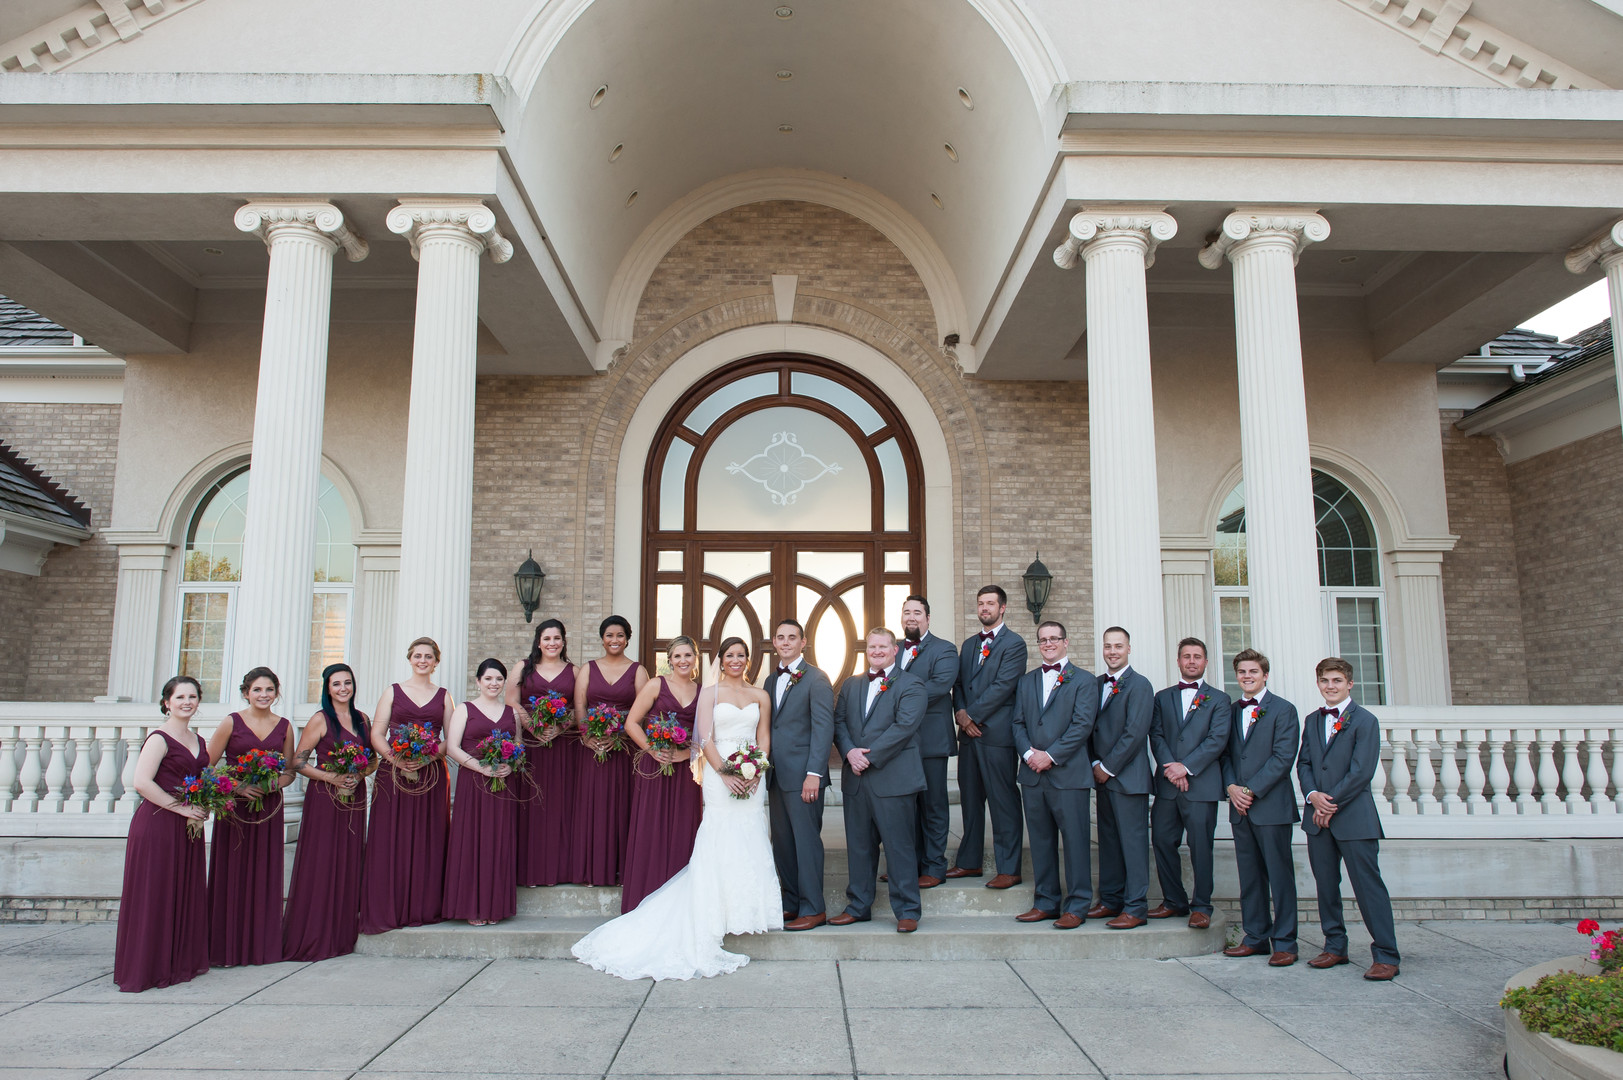 Magenta and Gray Bridal Party Chicago Winery Wedding Elite Photo